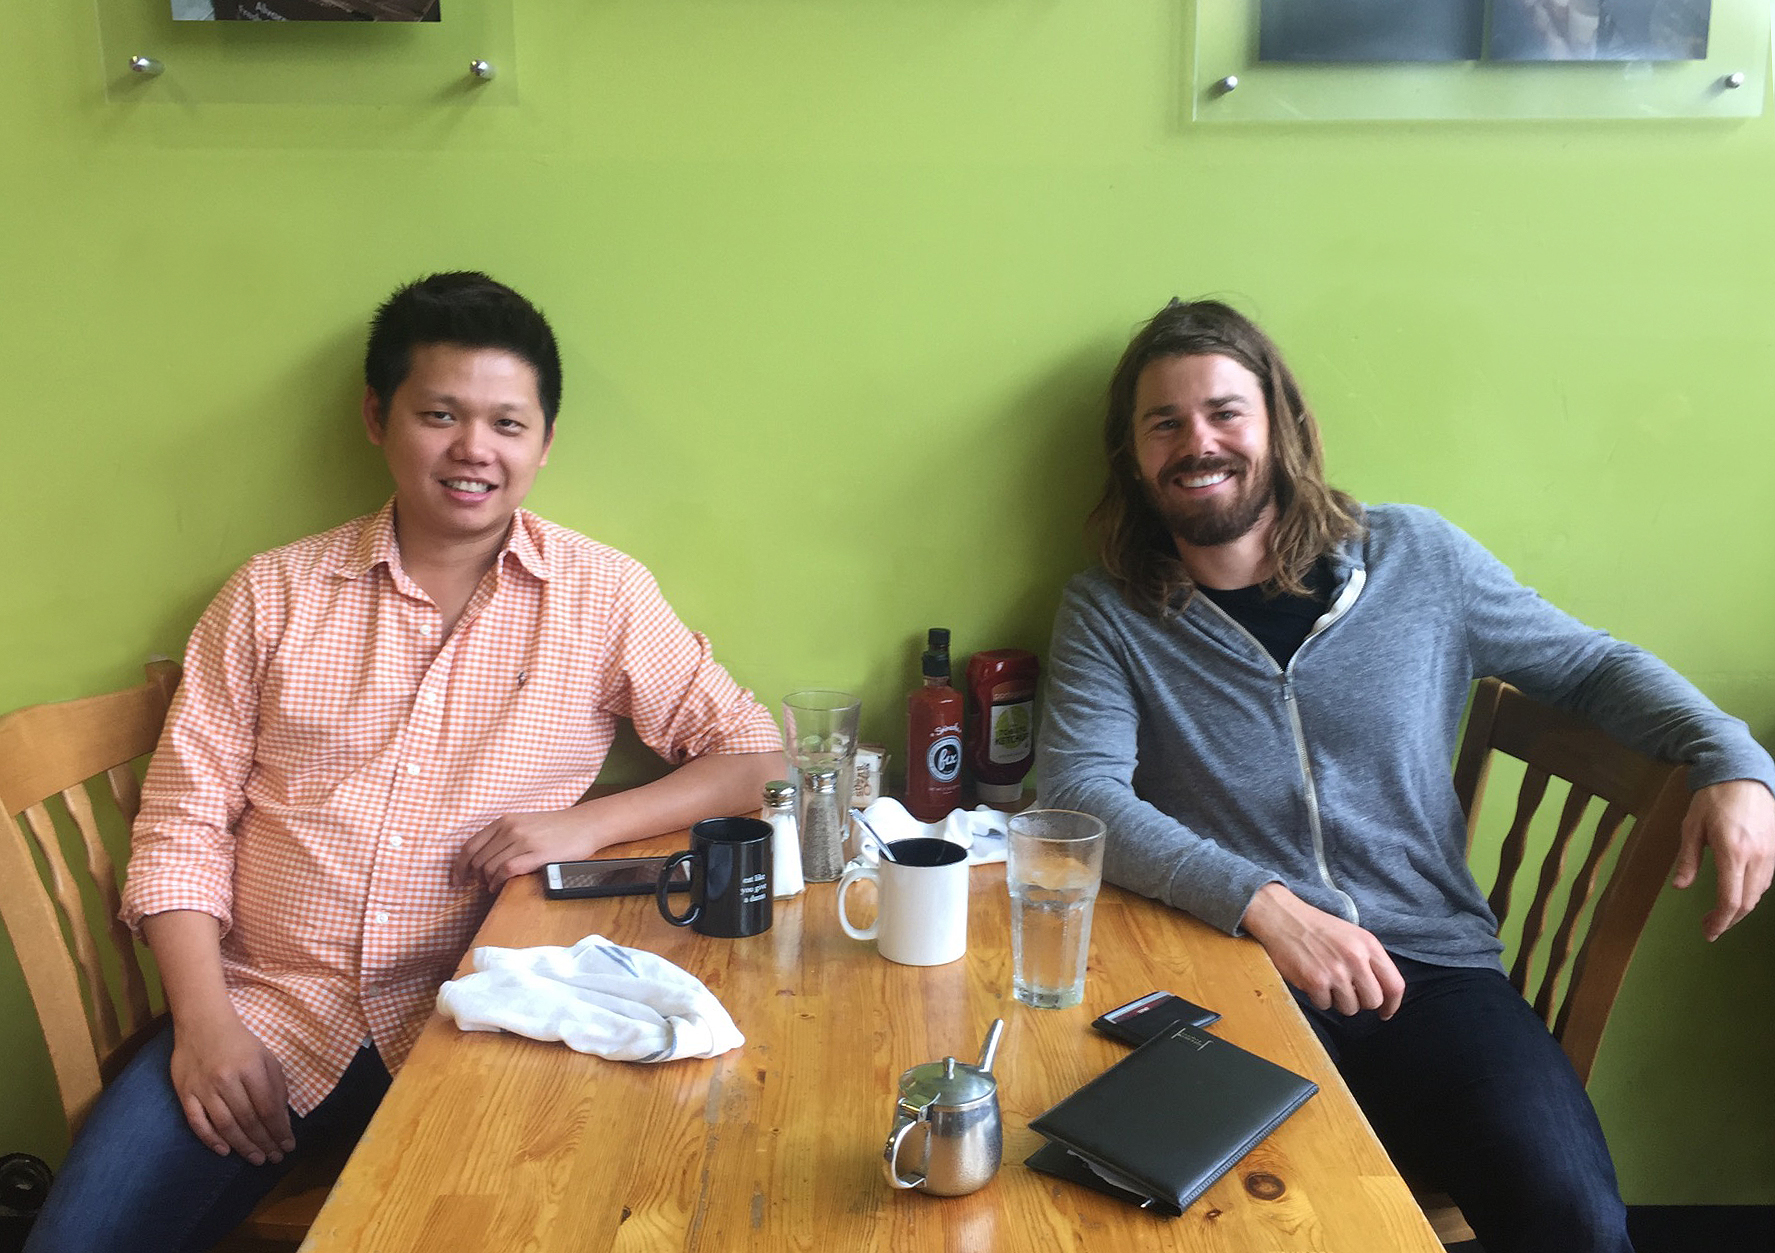 Saksit Udompanit (left) and Dan Price (right). (Photo provided by Gravity Payments)